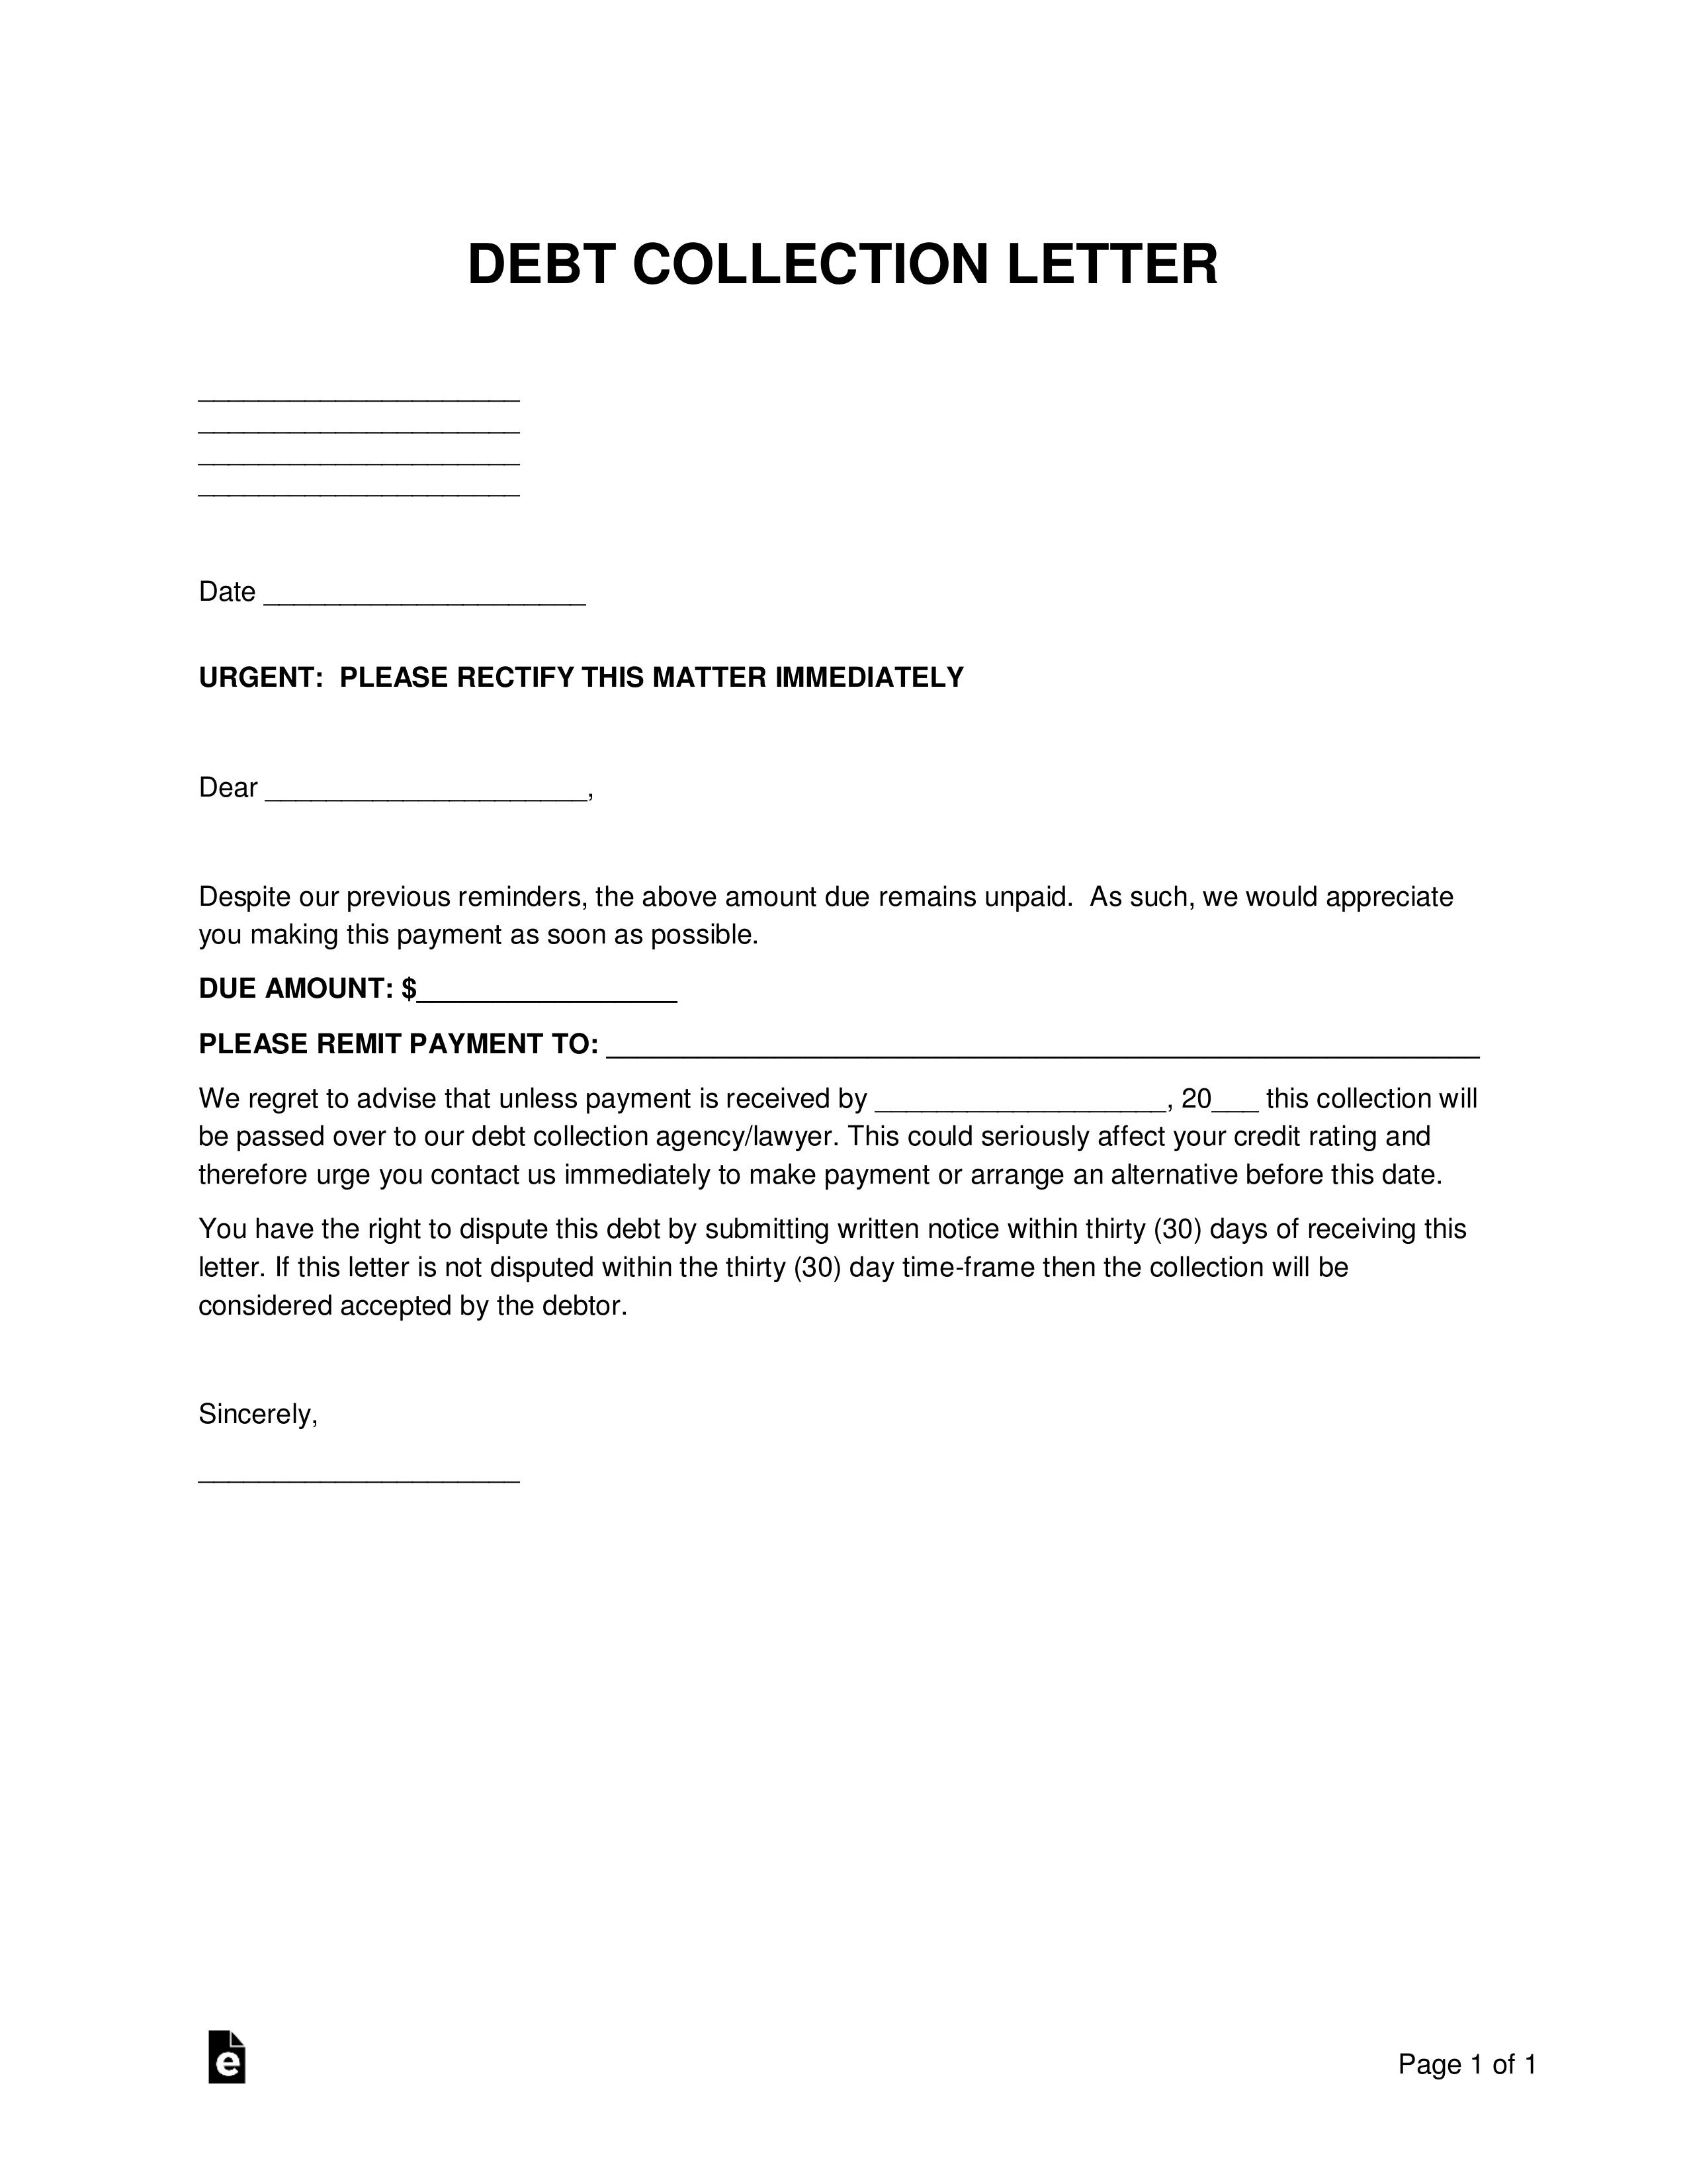 Dispute Letter To Collection Agency from eforms.com